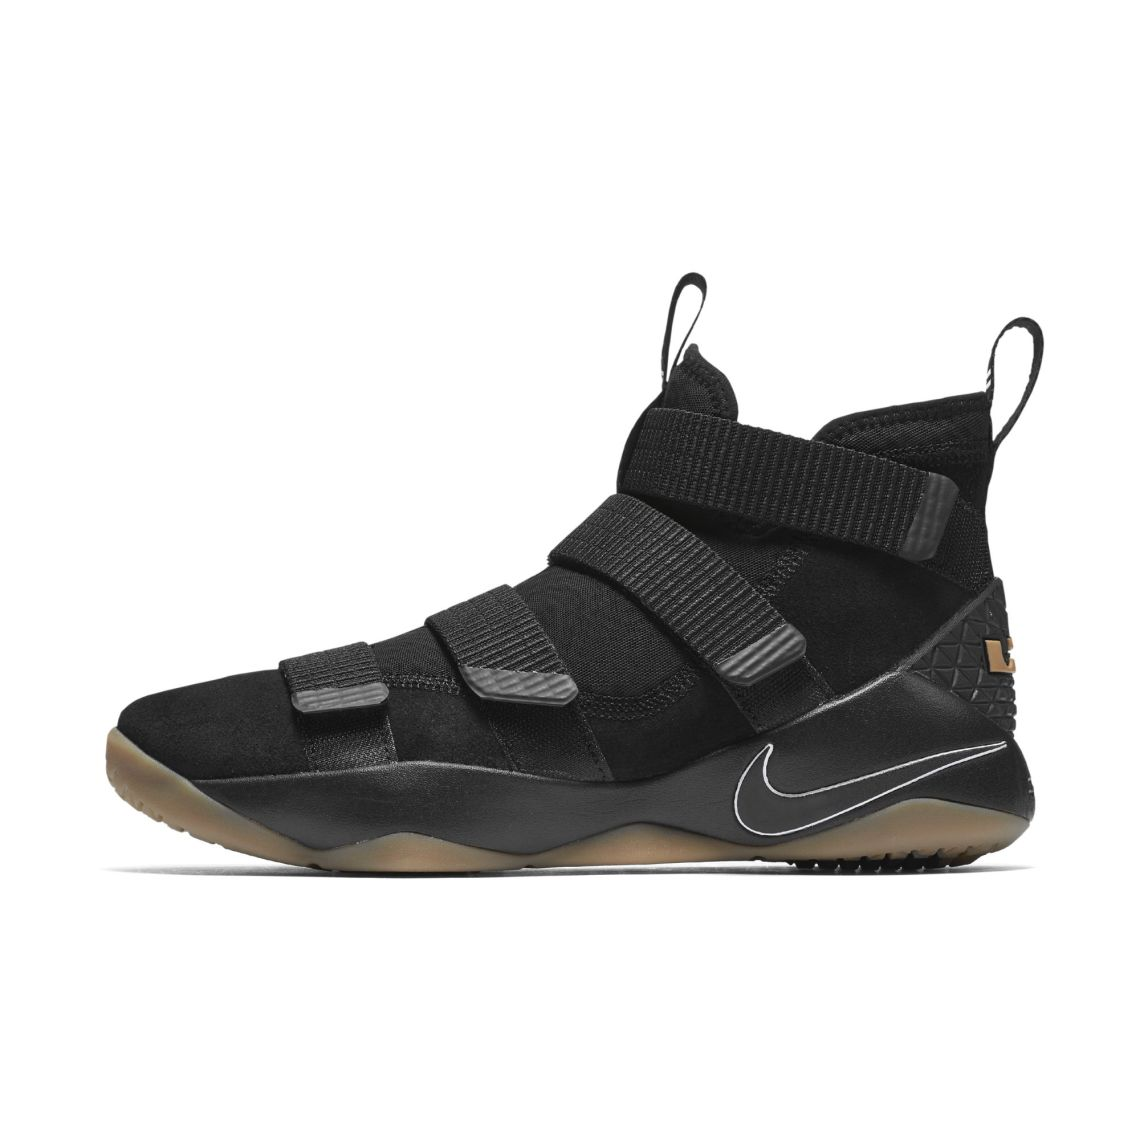 55c43711ab59 Nike LeBron Soldier 11 Black Gum    Preview